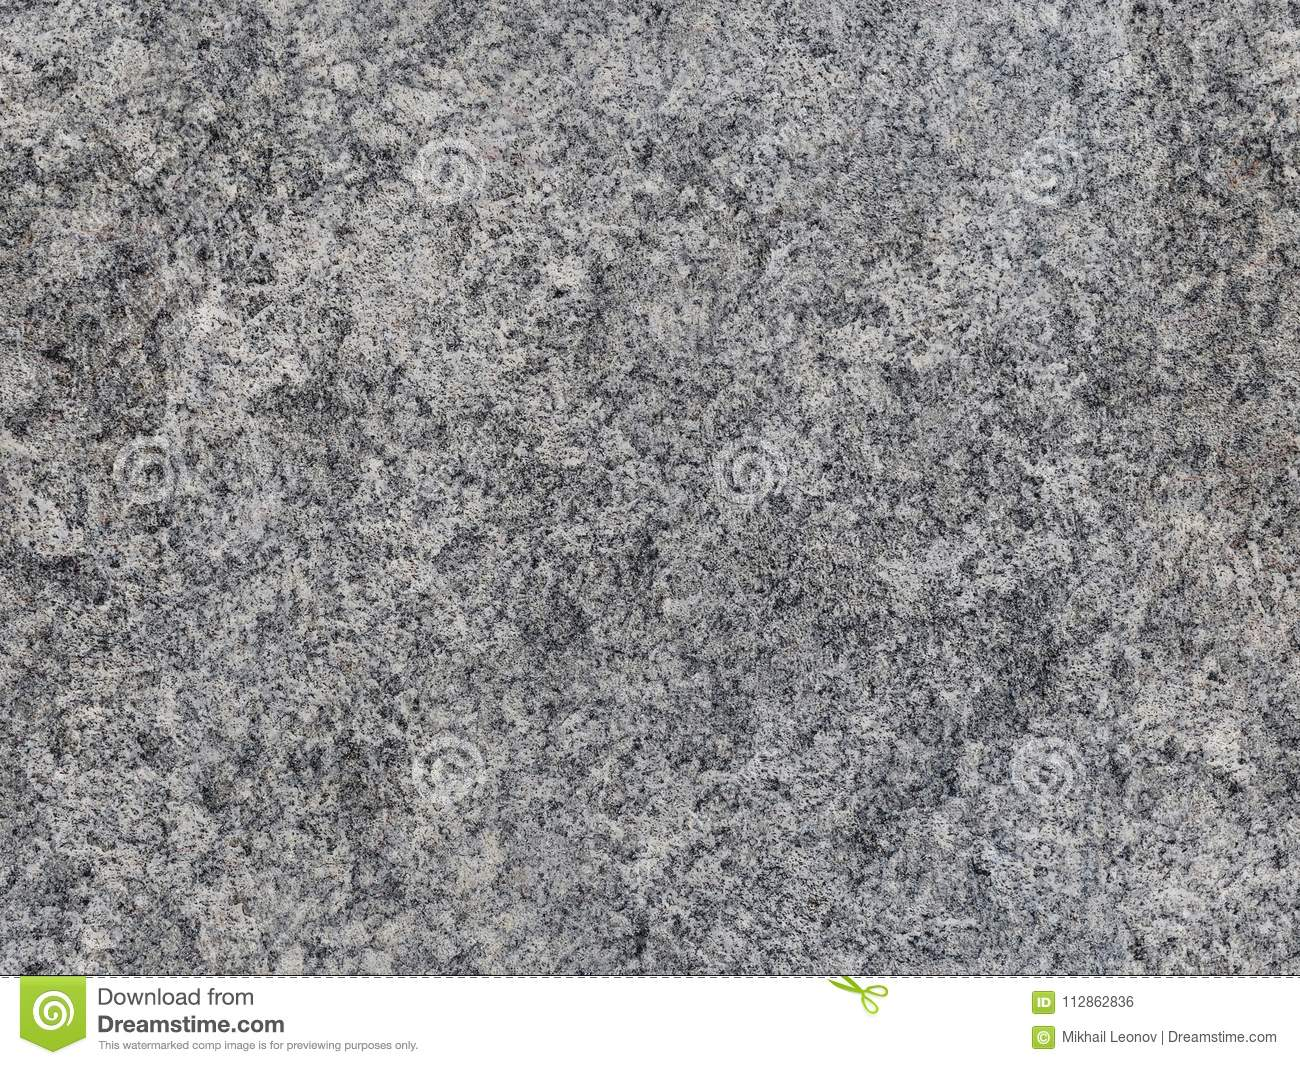 Grey natural raw seamless granite stone texture pattern background. Rough natural stone seamless texture surface with cracks, dent